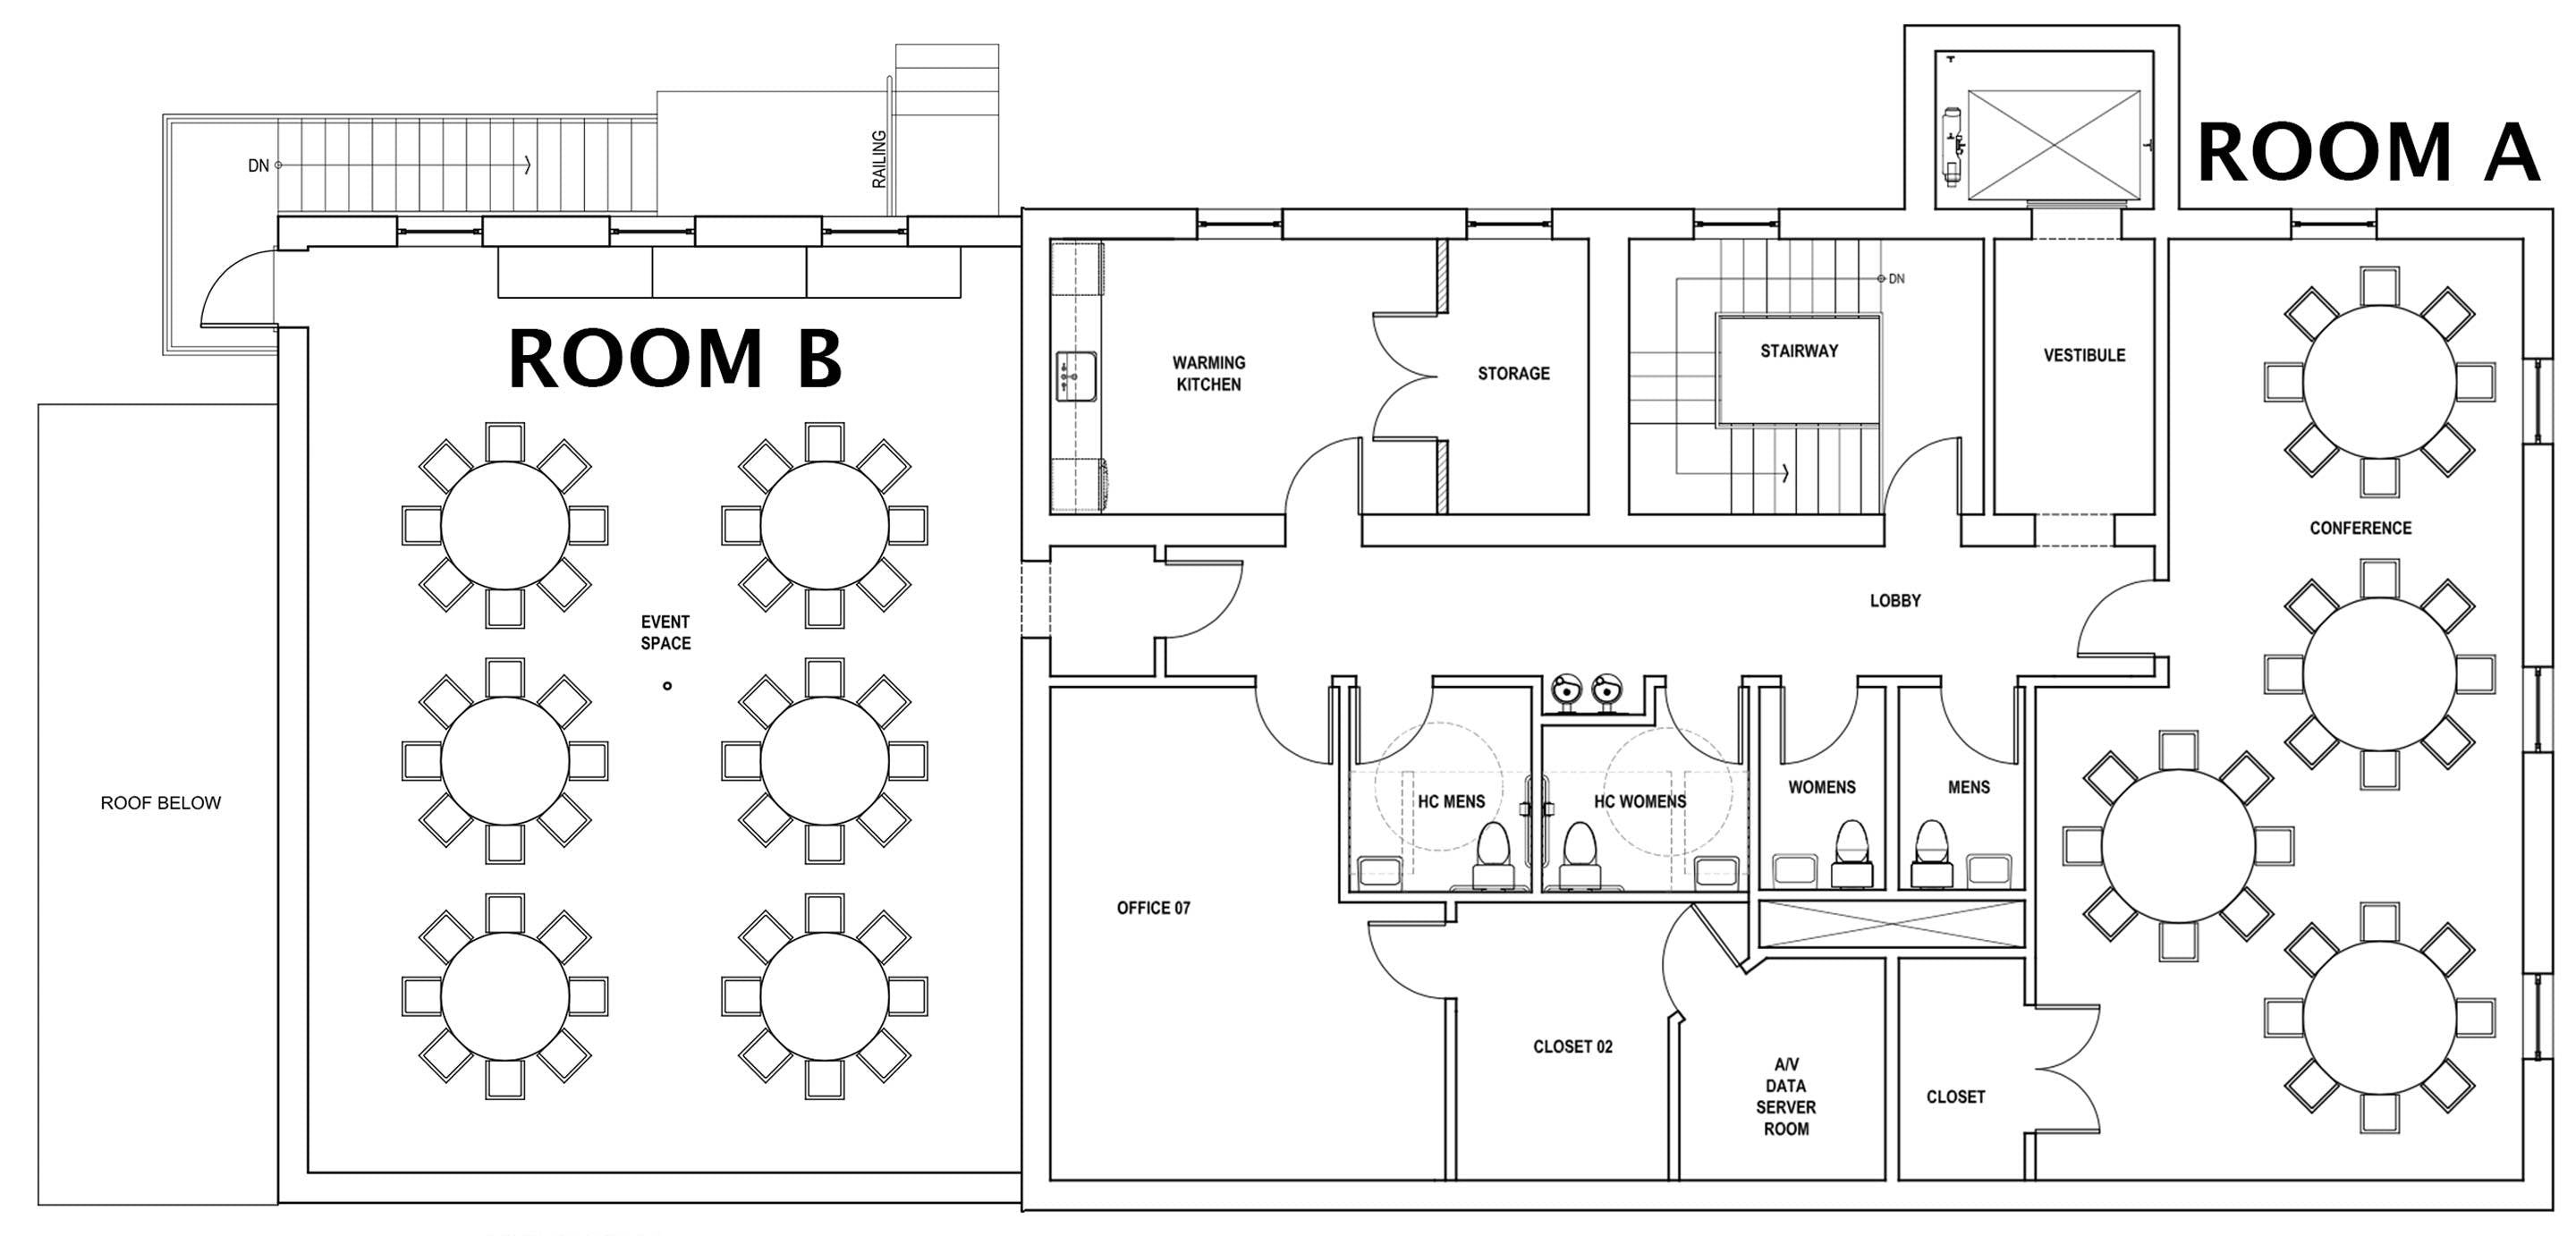 Layout of Rooms A and B